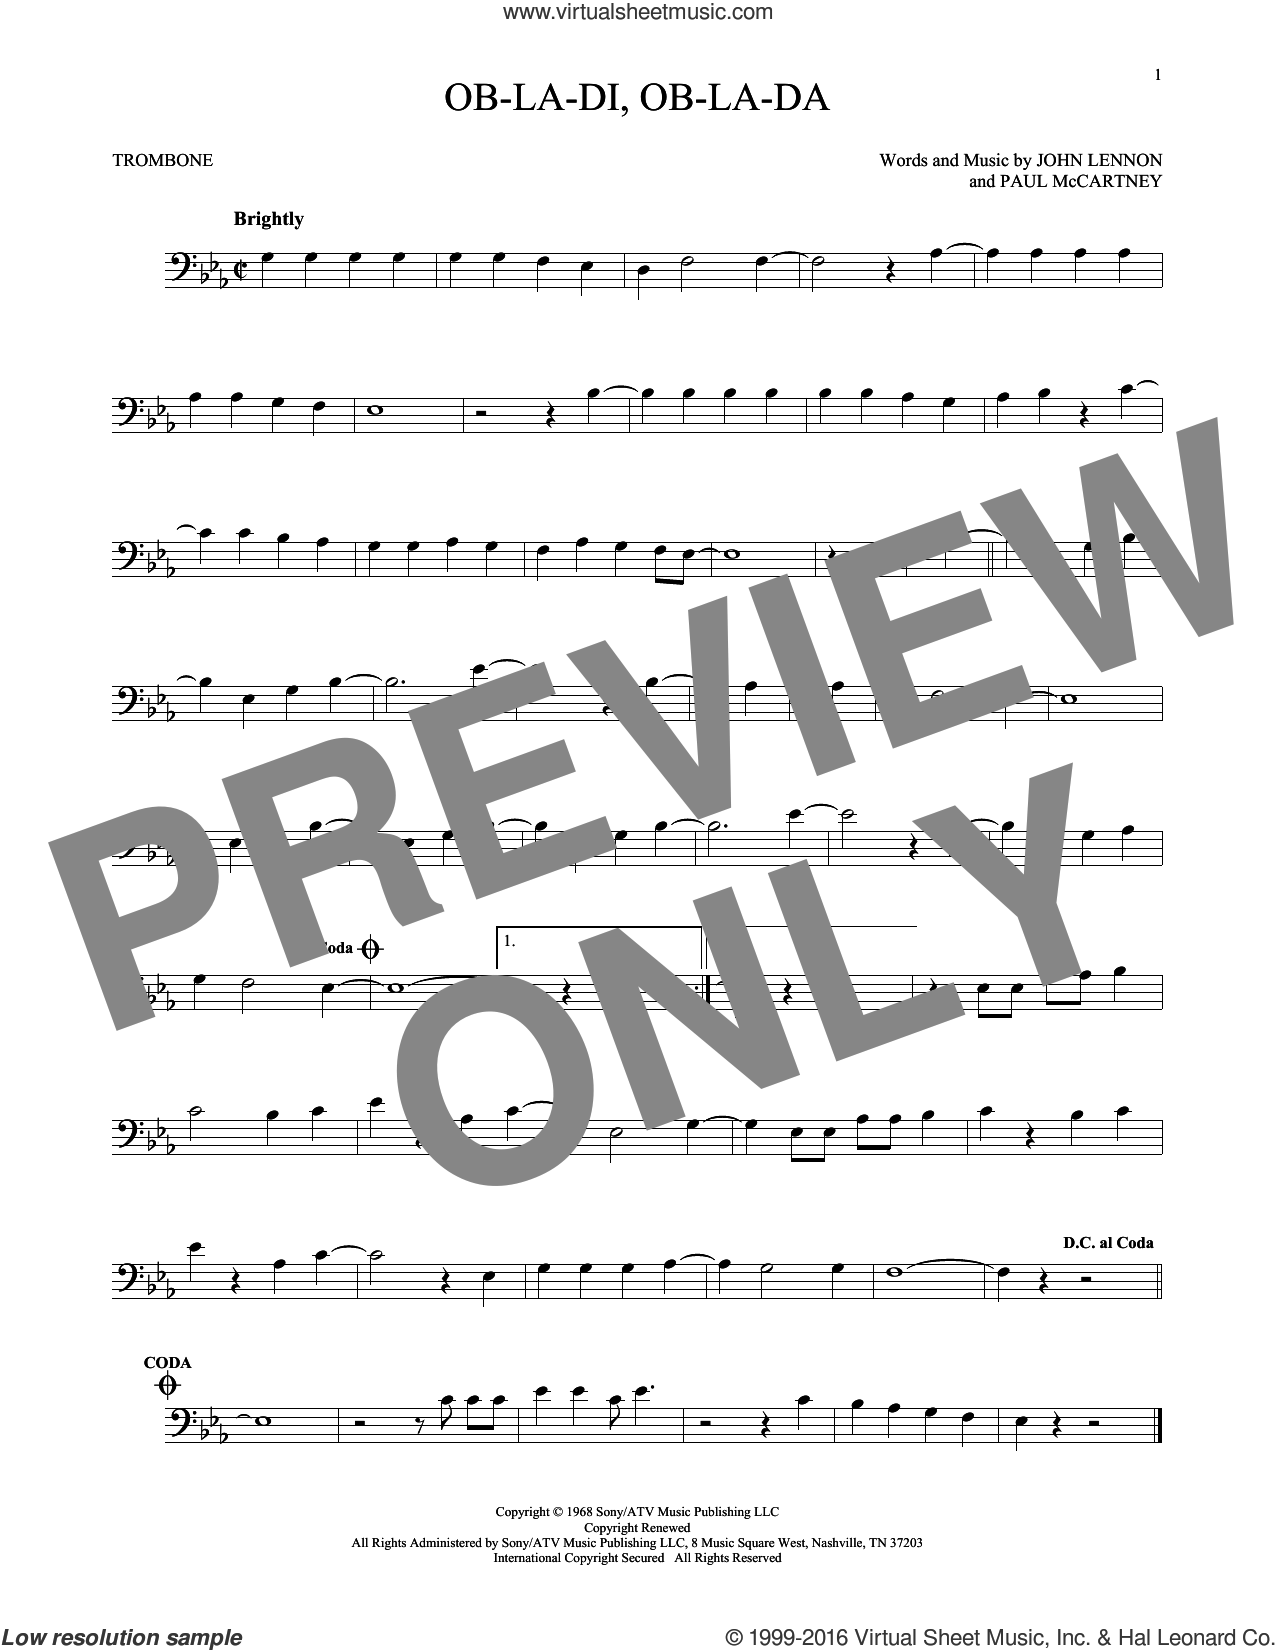 Ob-La-Di, Ob-La-Da sheet music for trombone solo by The Beatles, John Lennon and Paul McCartney, intermediate skill level